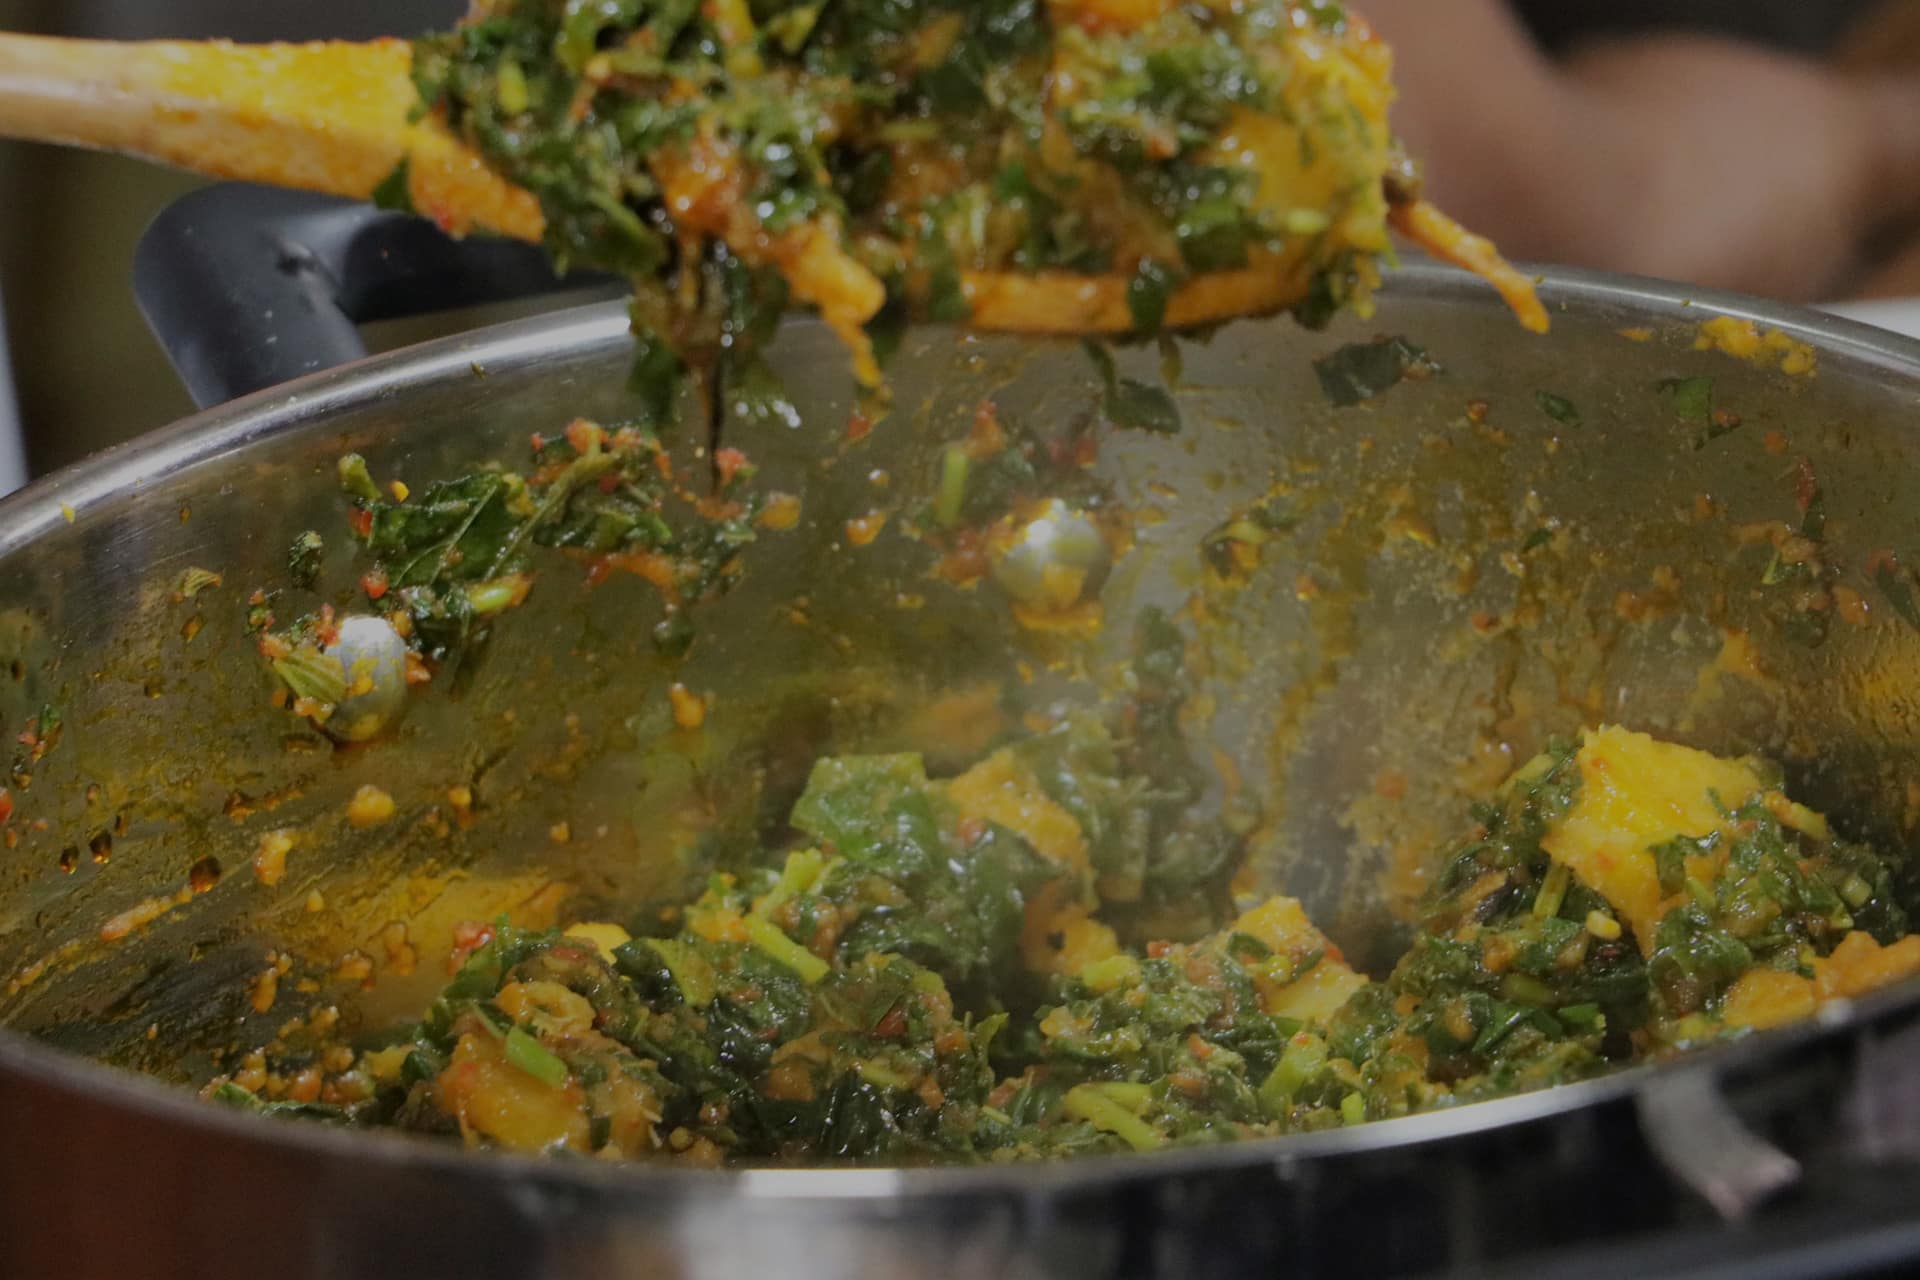 Yam in Vegetable Sauce